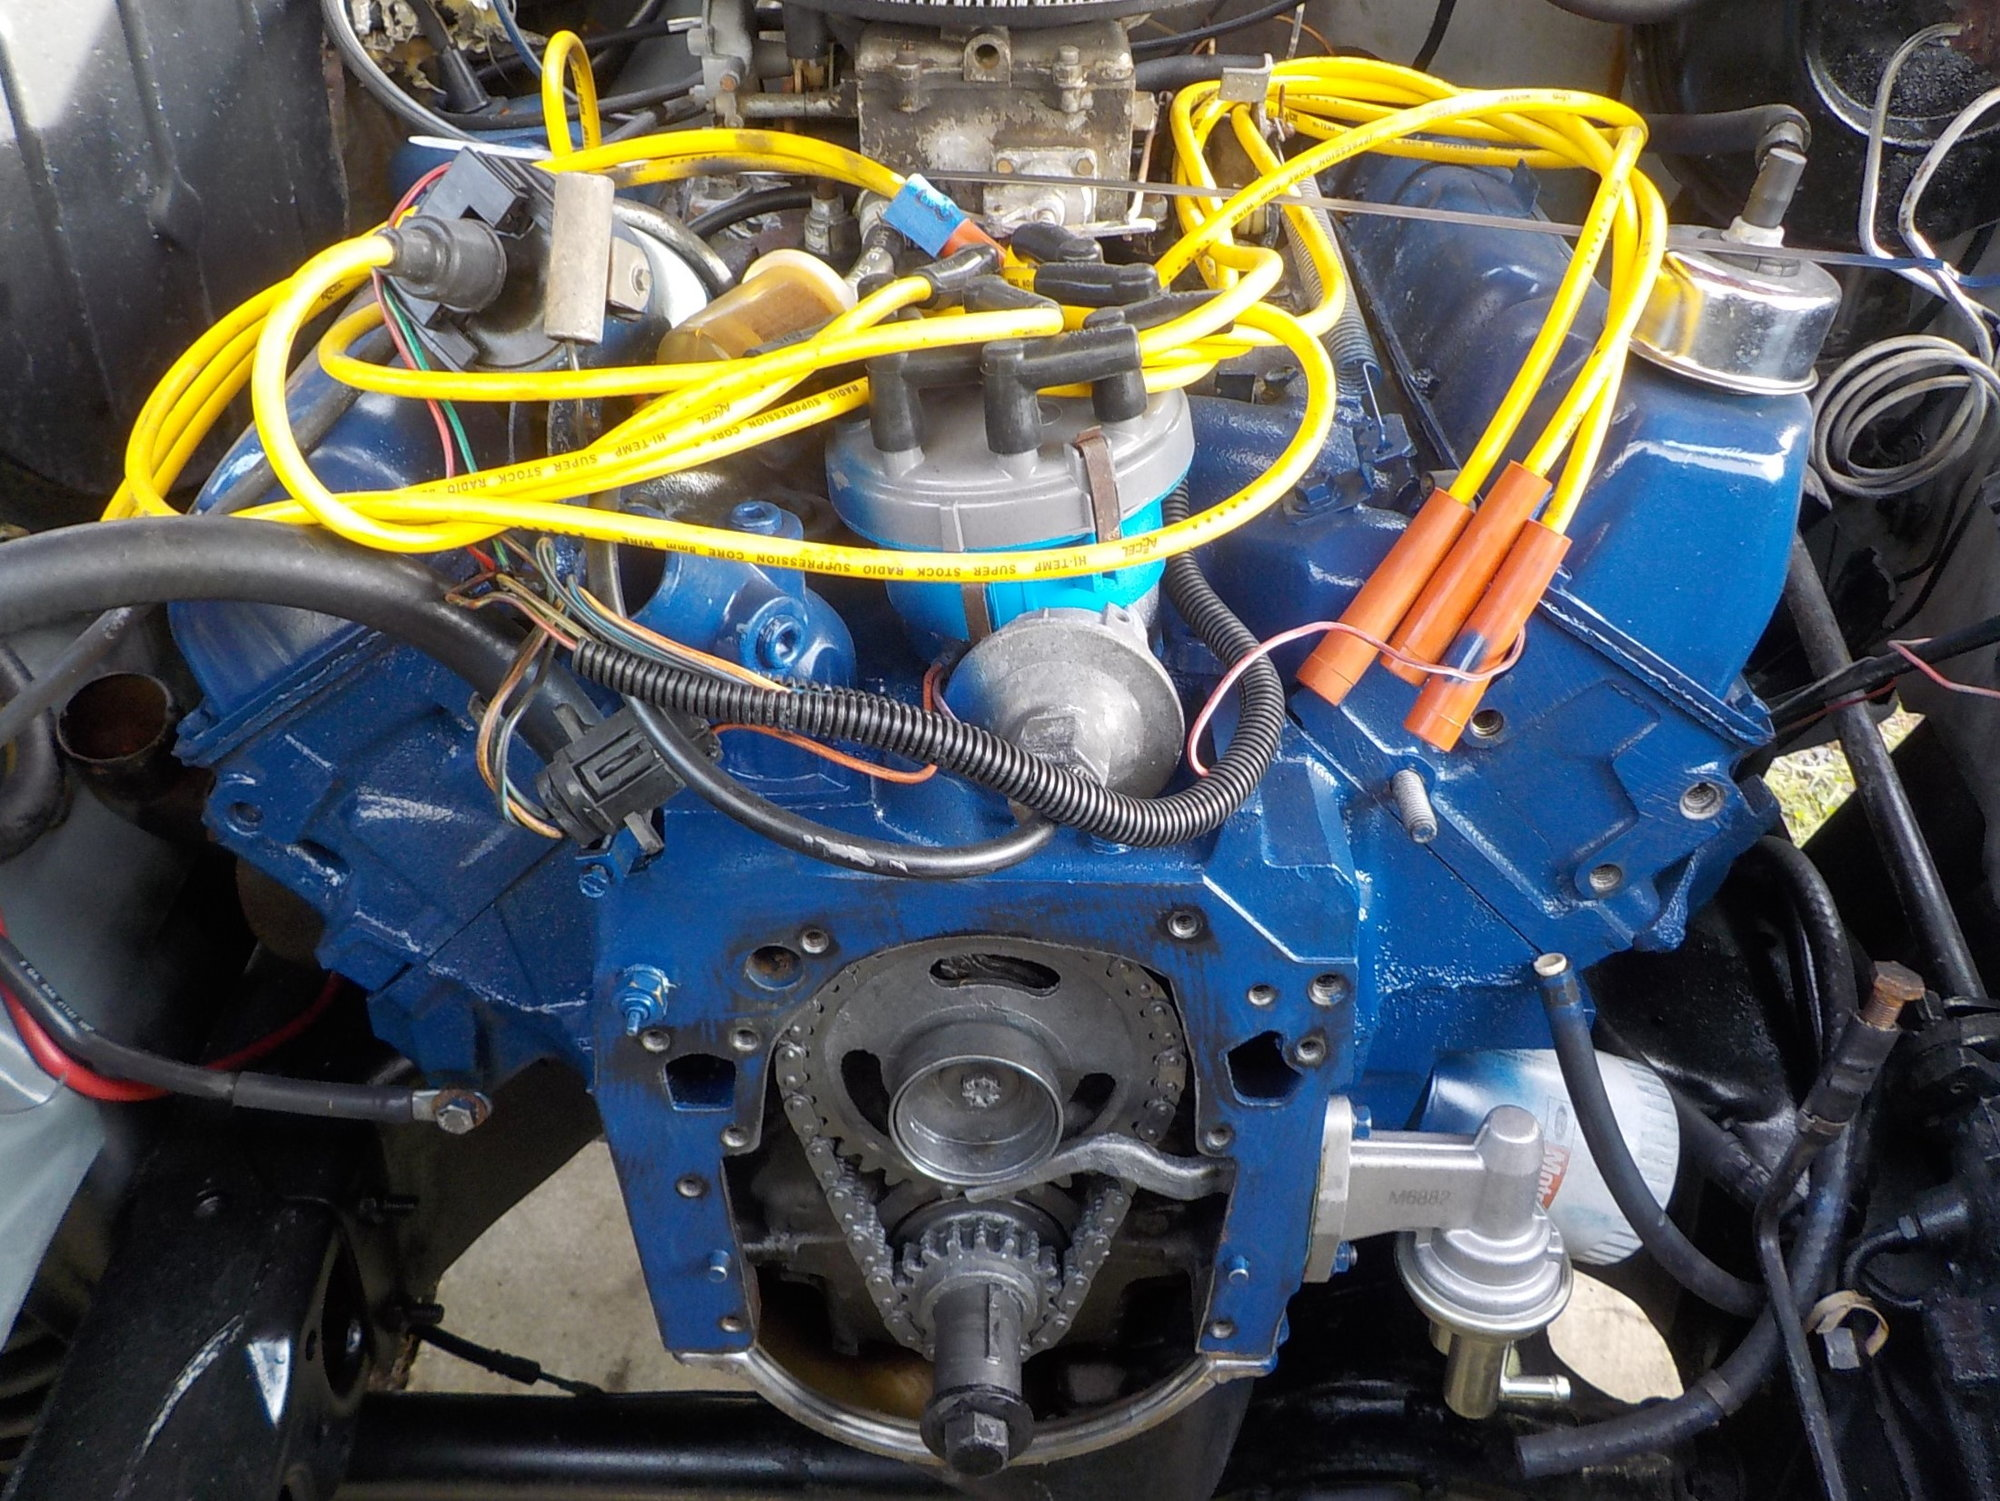 hight resolution of 351m 400 gates 43041 water pump and alternator bracket clearance issue problem